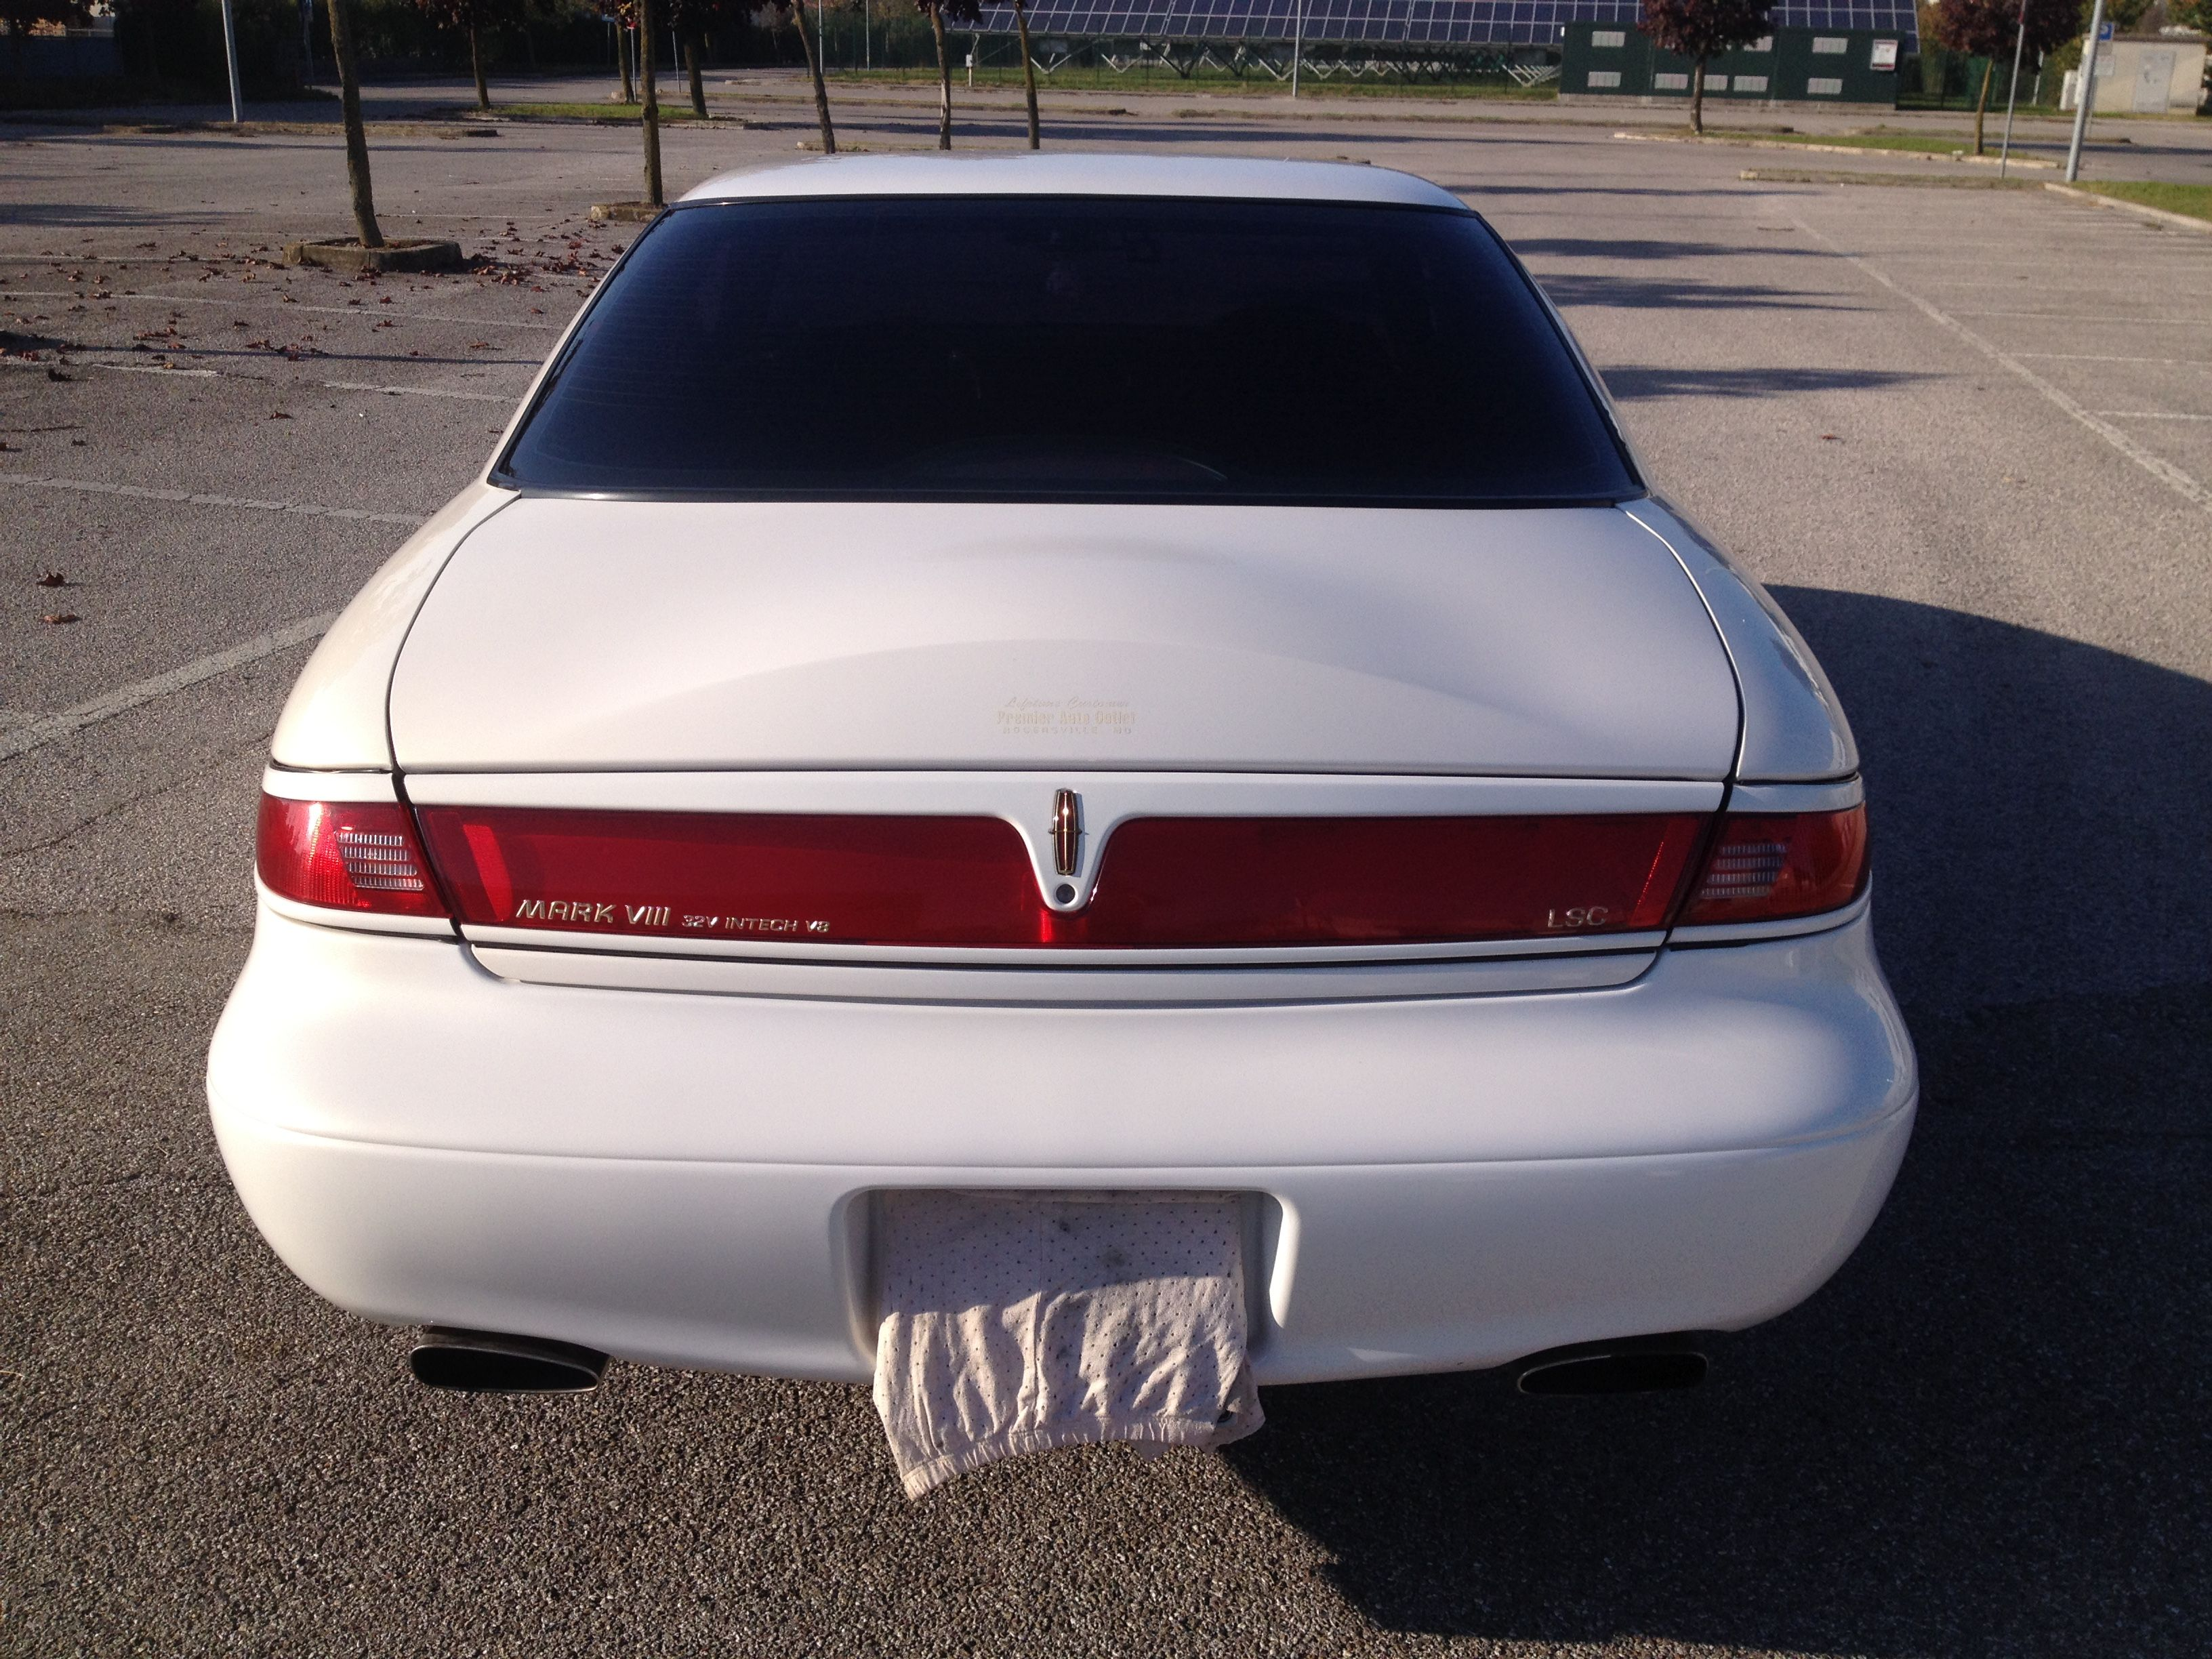 Lincoln mark viii collector s edition 1998 lincoln mark viii pinterest ford and cars